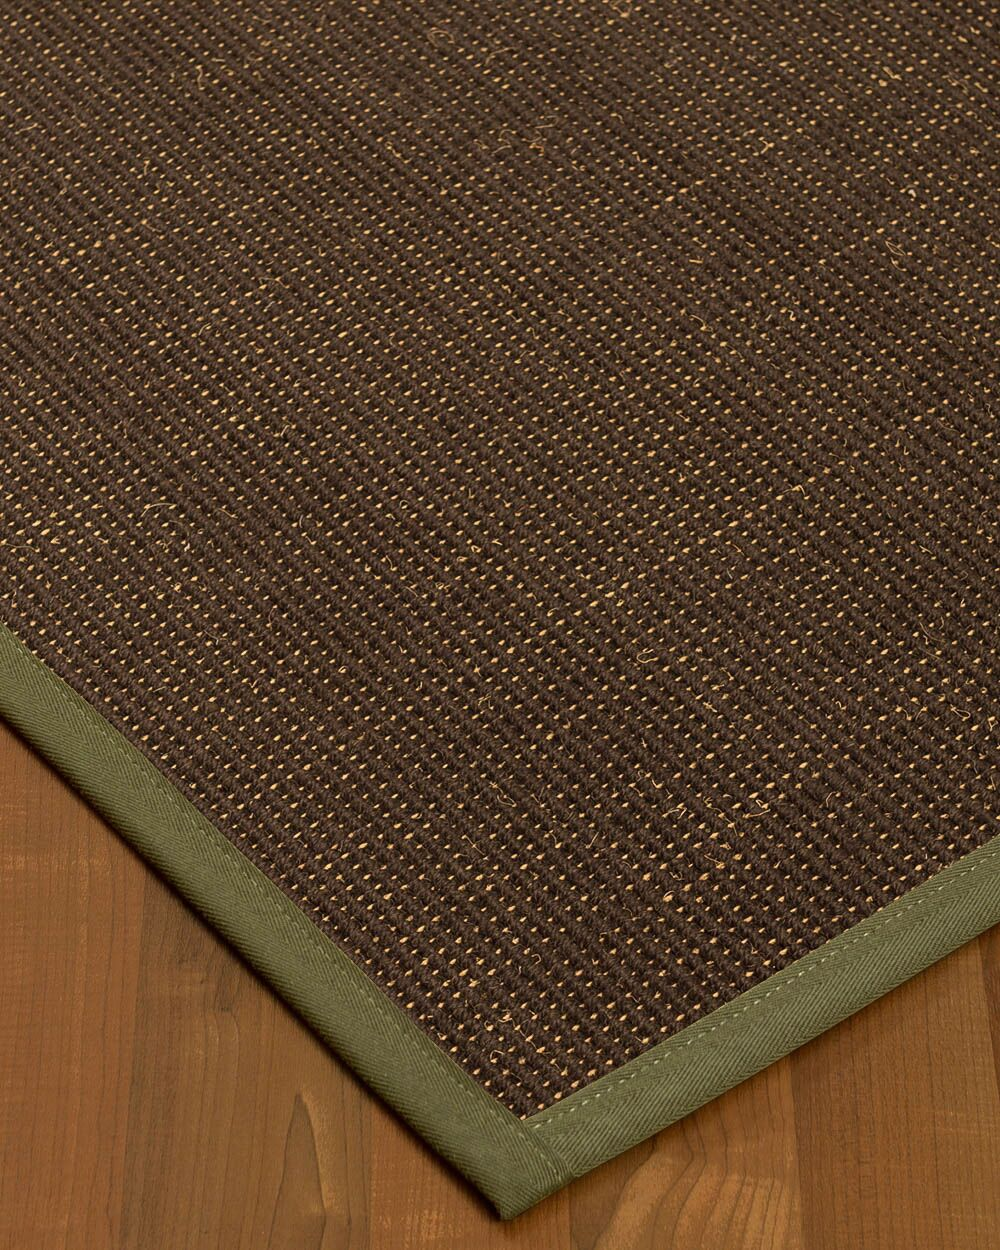 Kersh Border Hand-Woven Brown/Fossil Area Rug Rug Size: Rectangle 4' x 6', Rug Pad Included: Yes